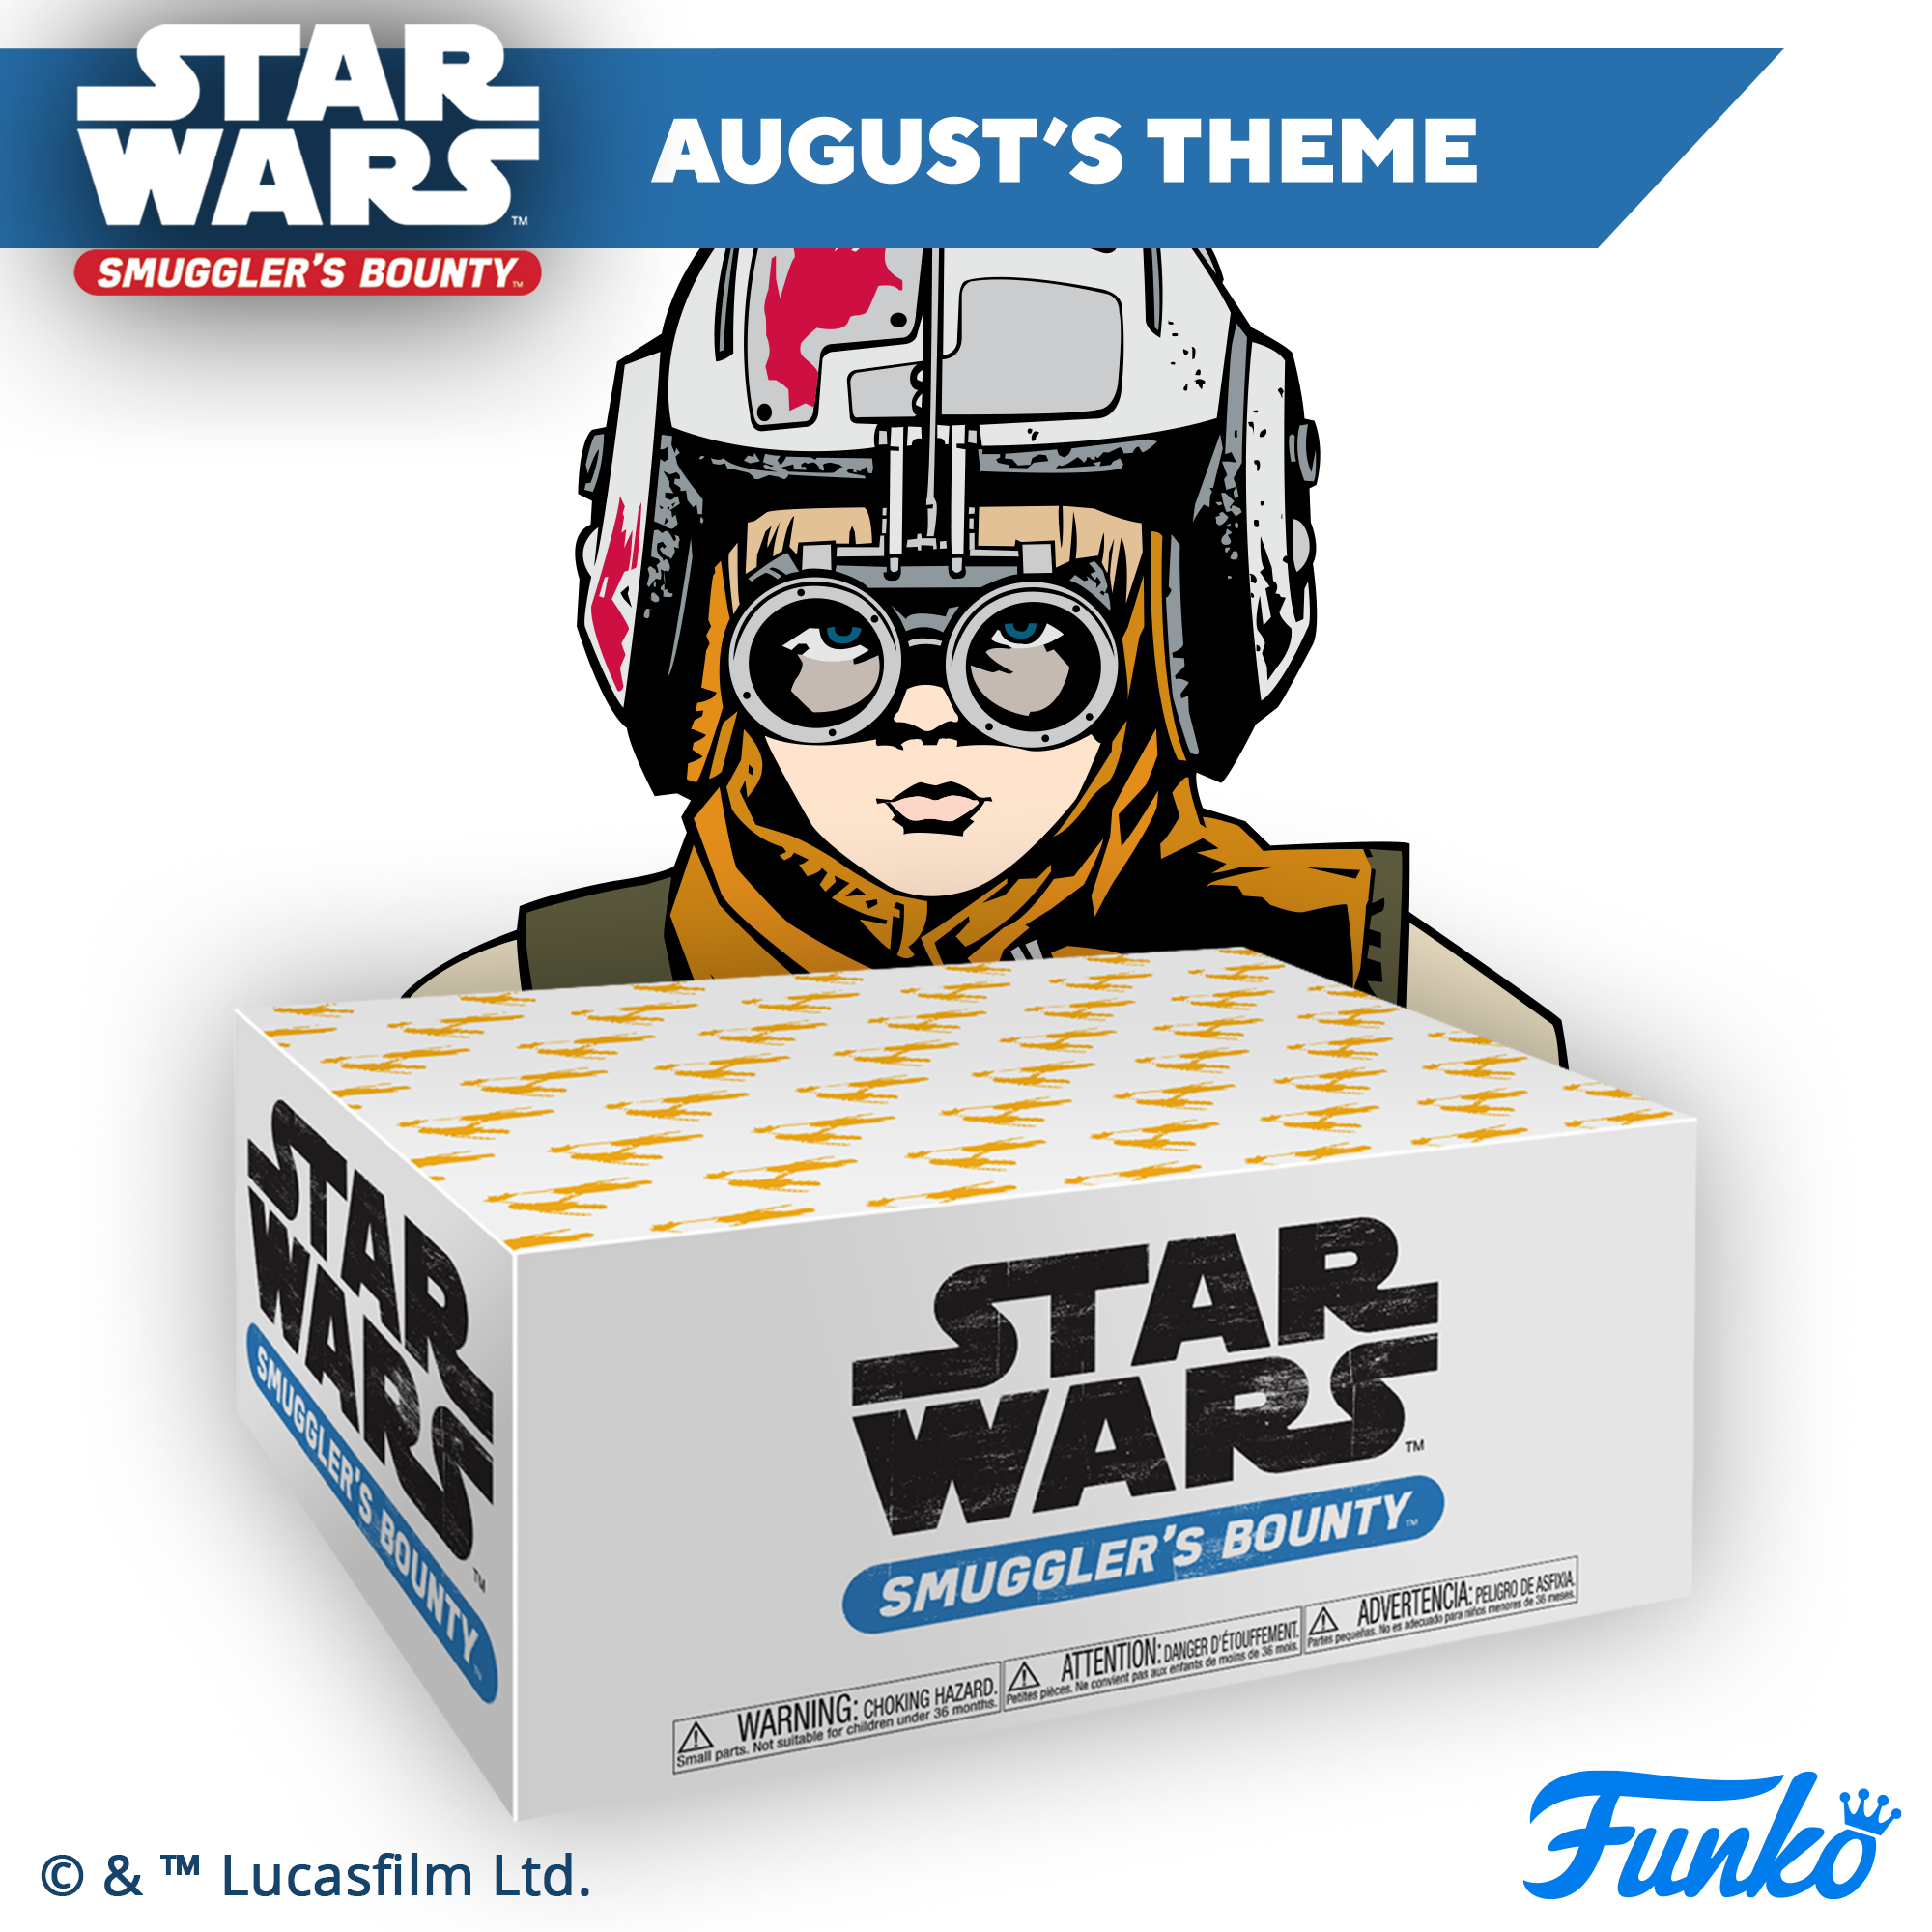 Funko Star Wars Smuggler's Bounty Box from Funko